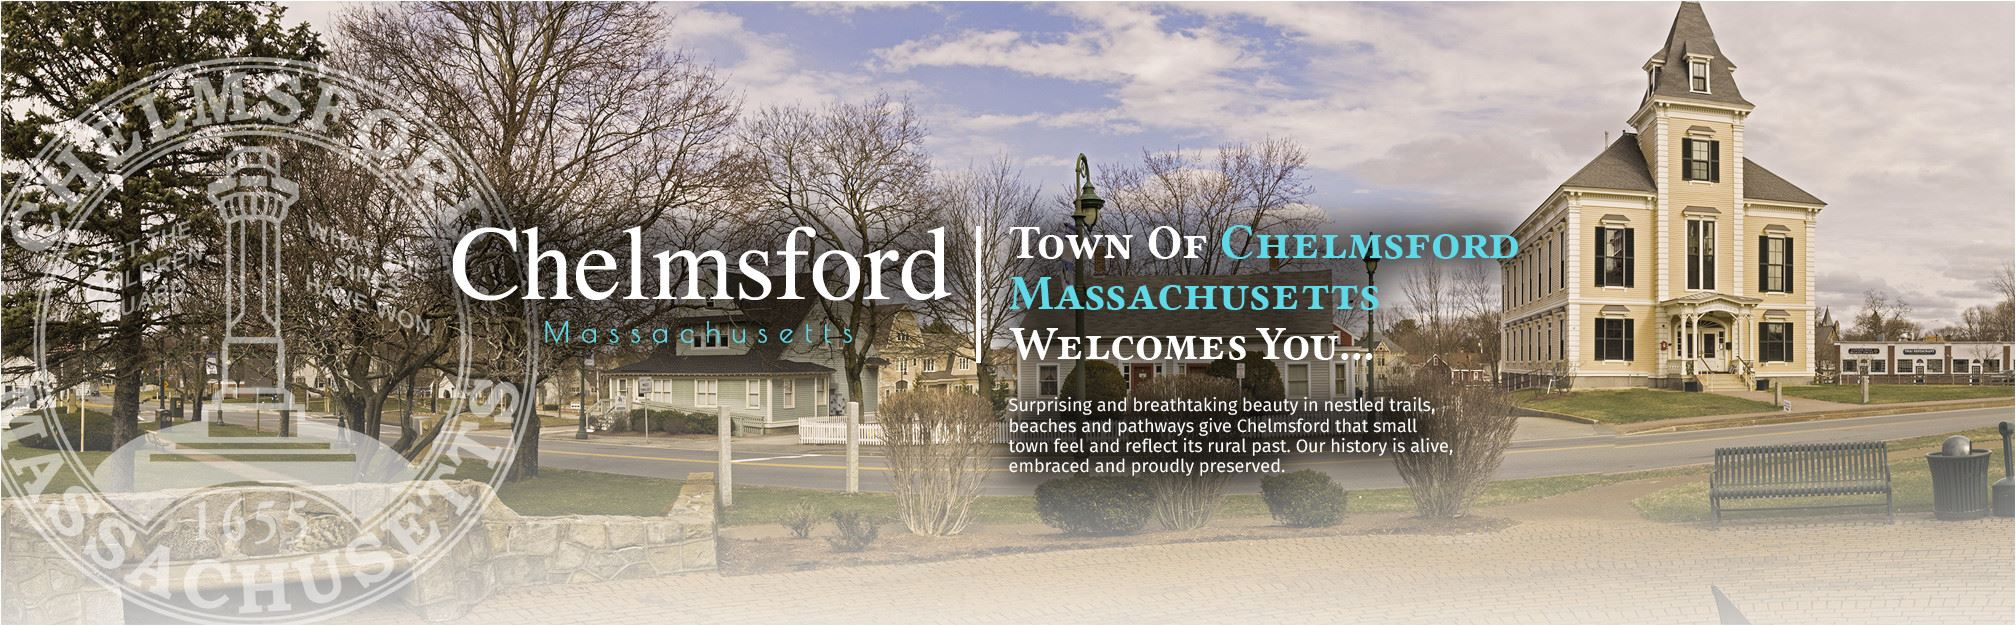 chelmsford ma official website official website